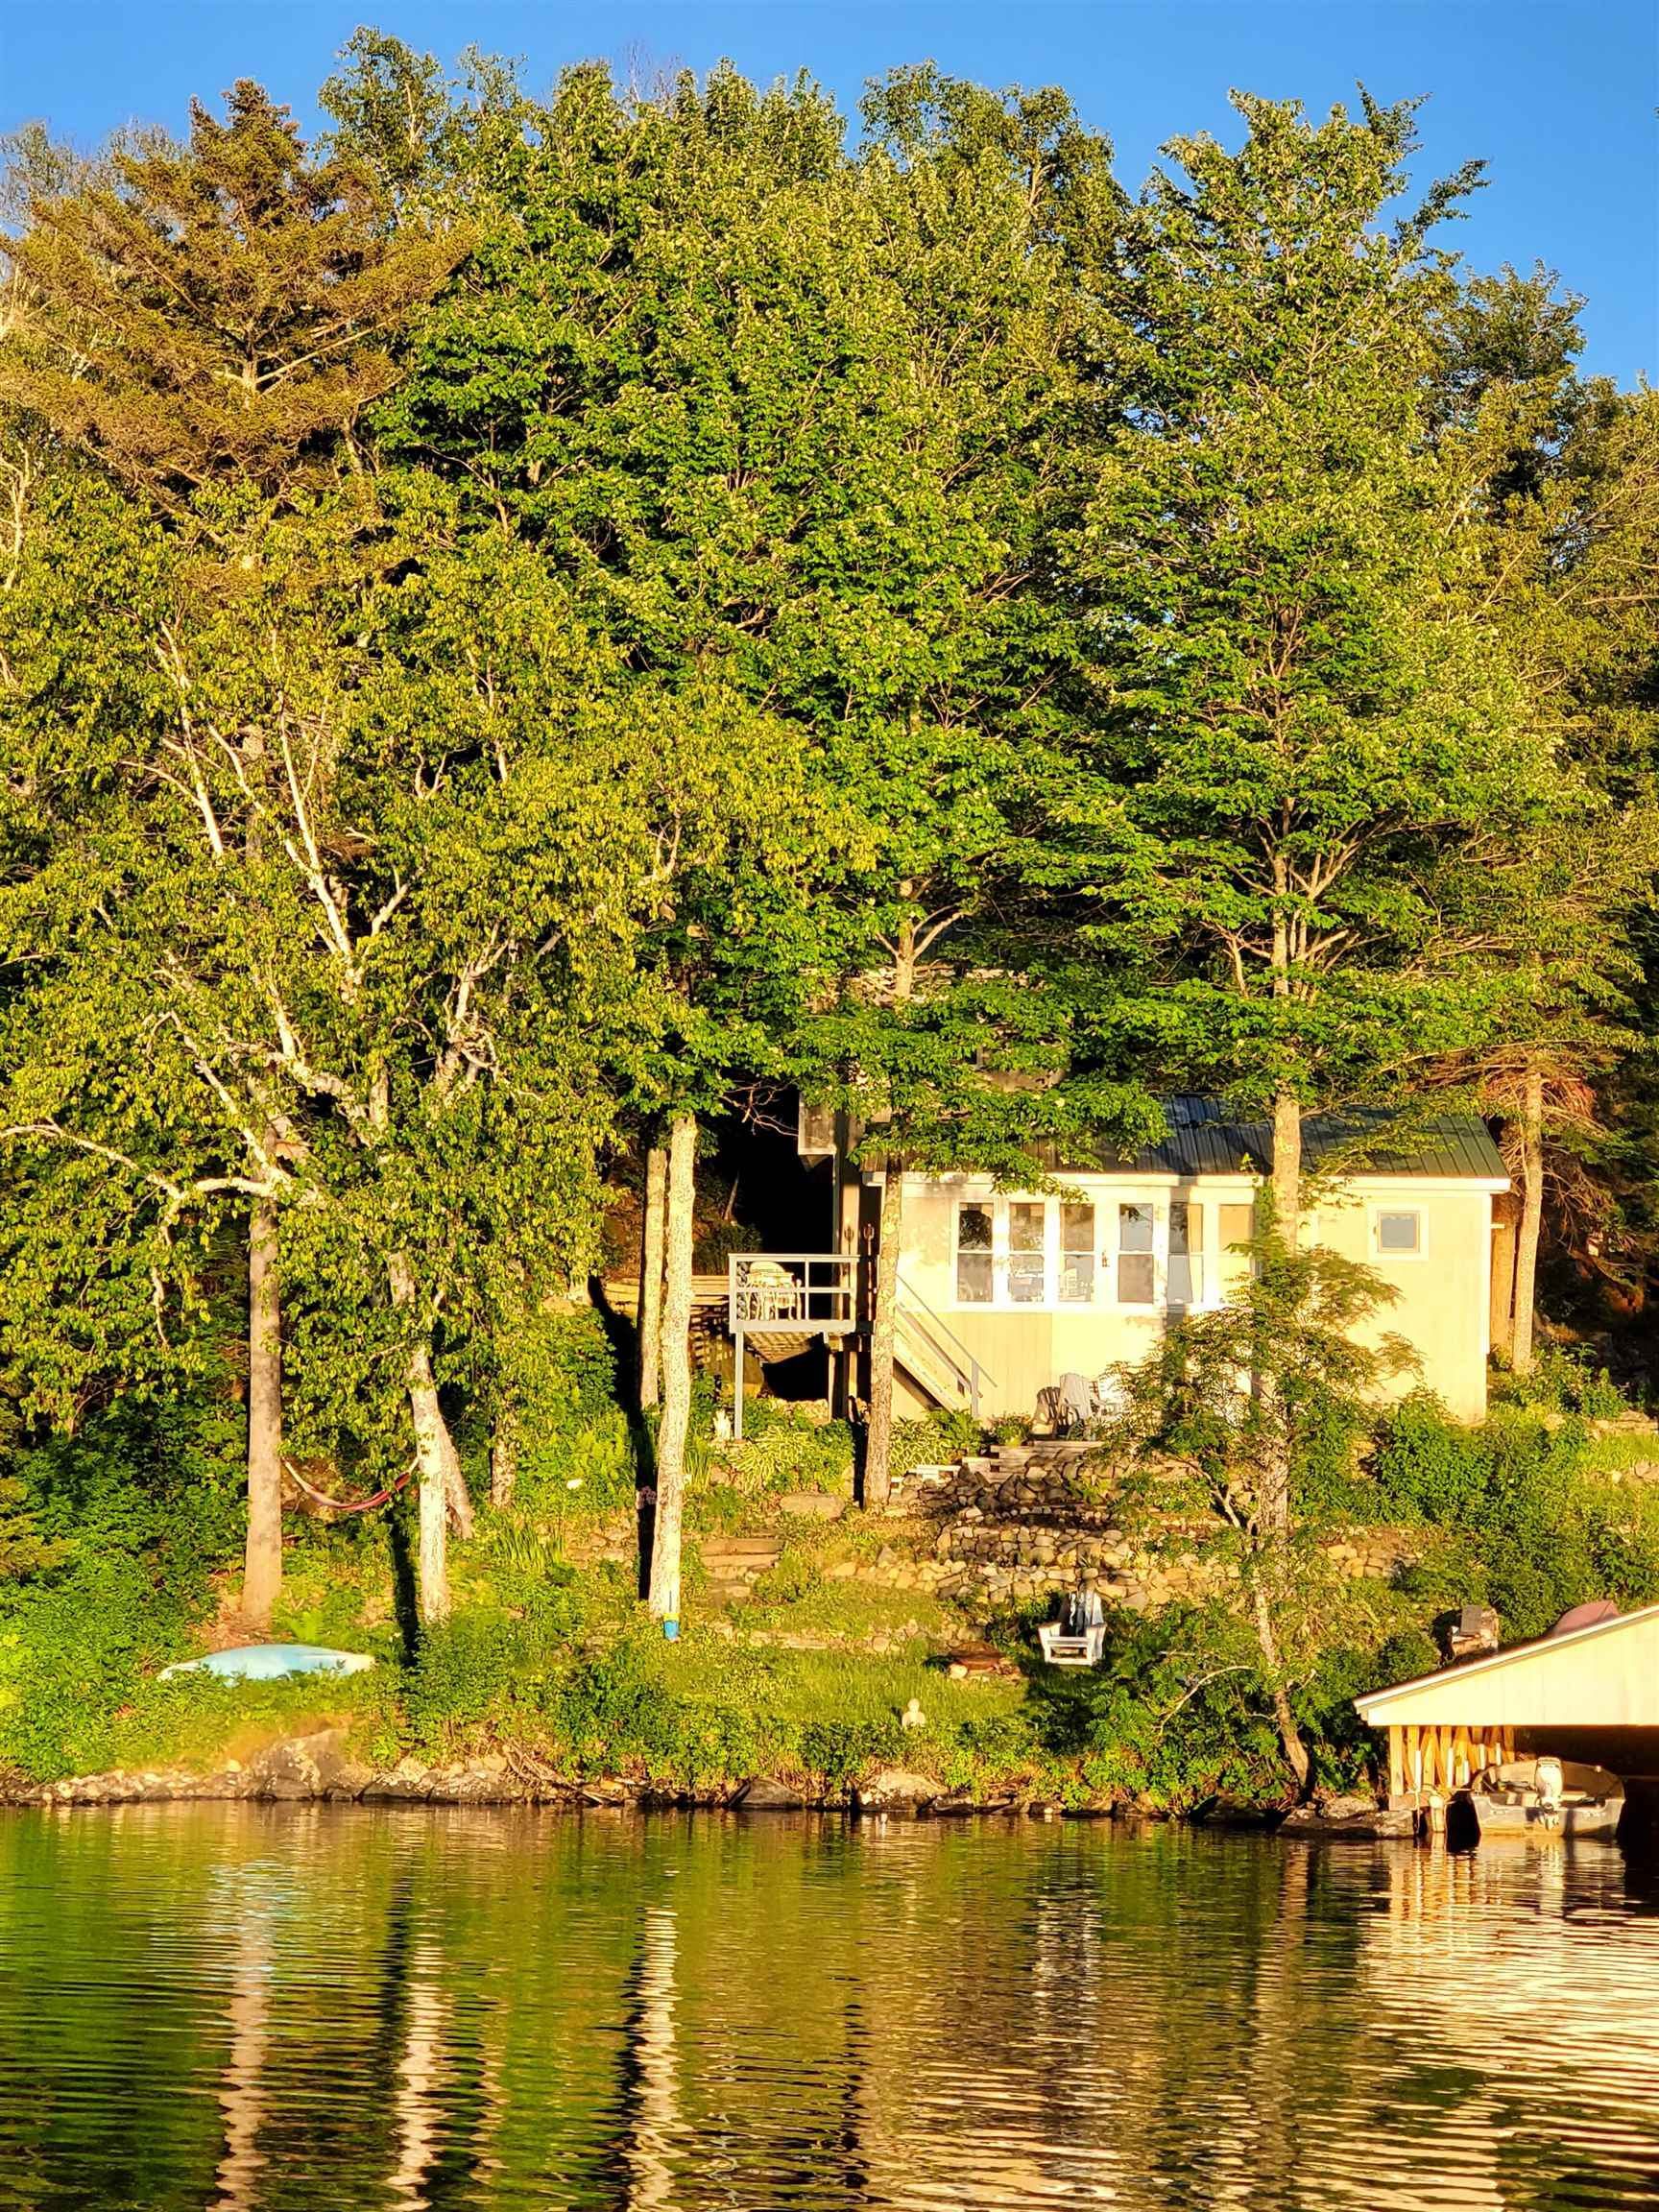 644 Campers Lane, Concord, VT 05858